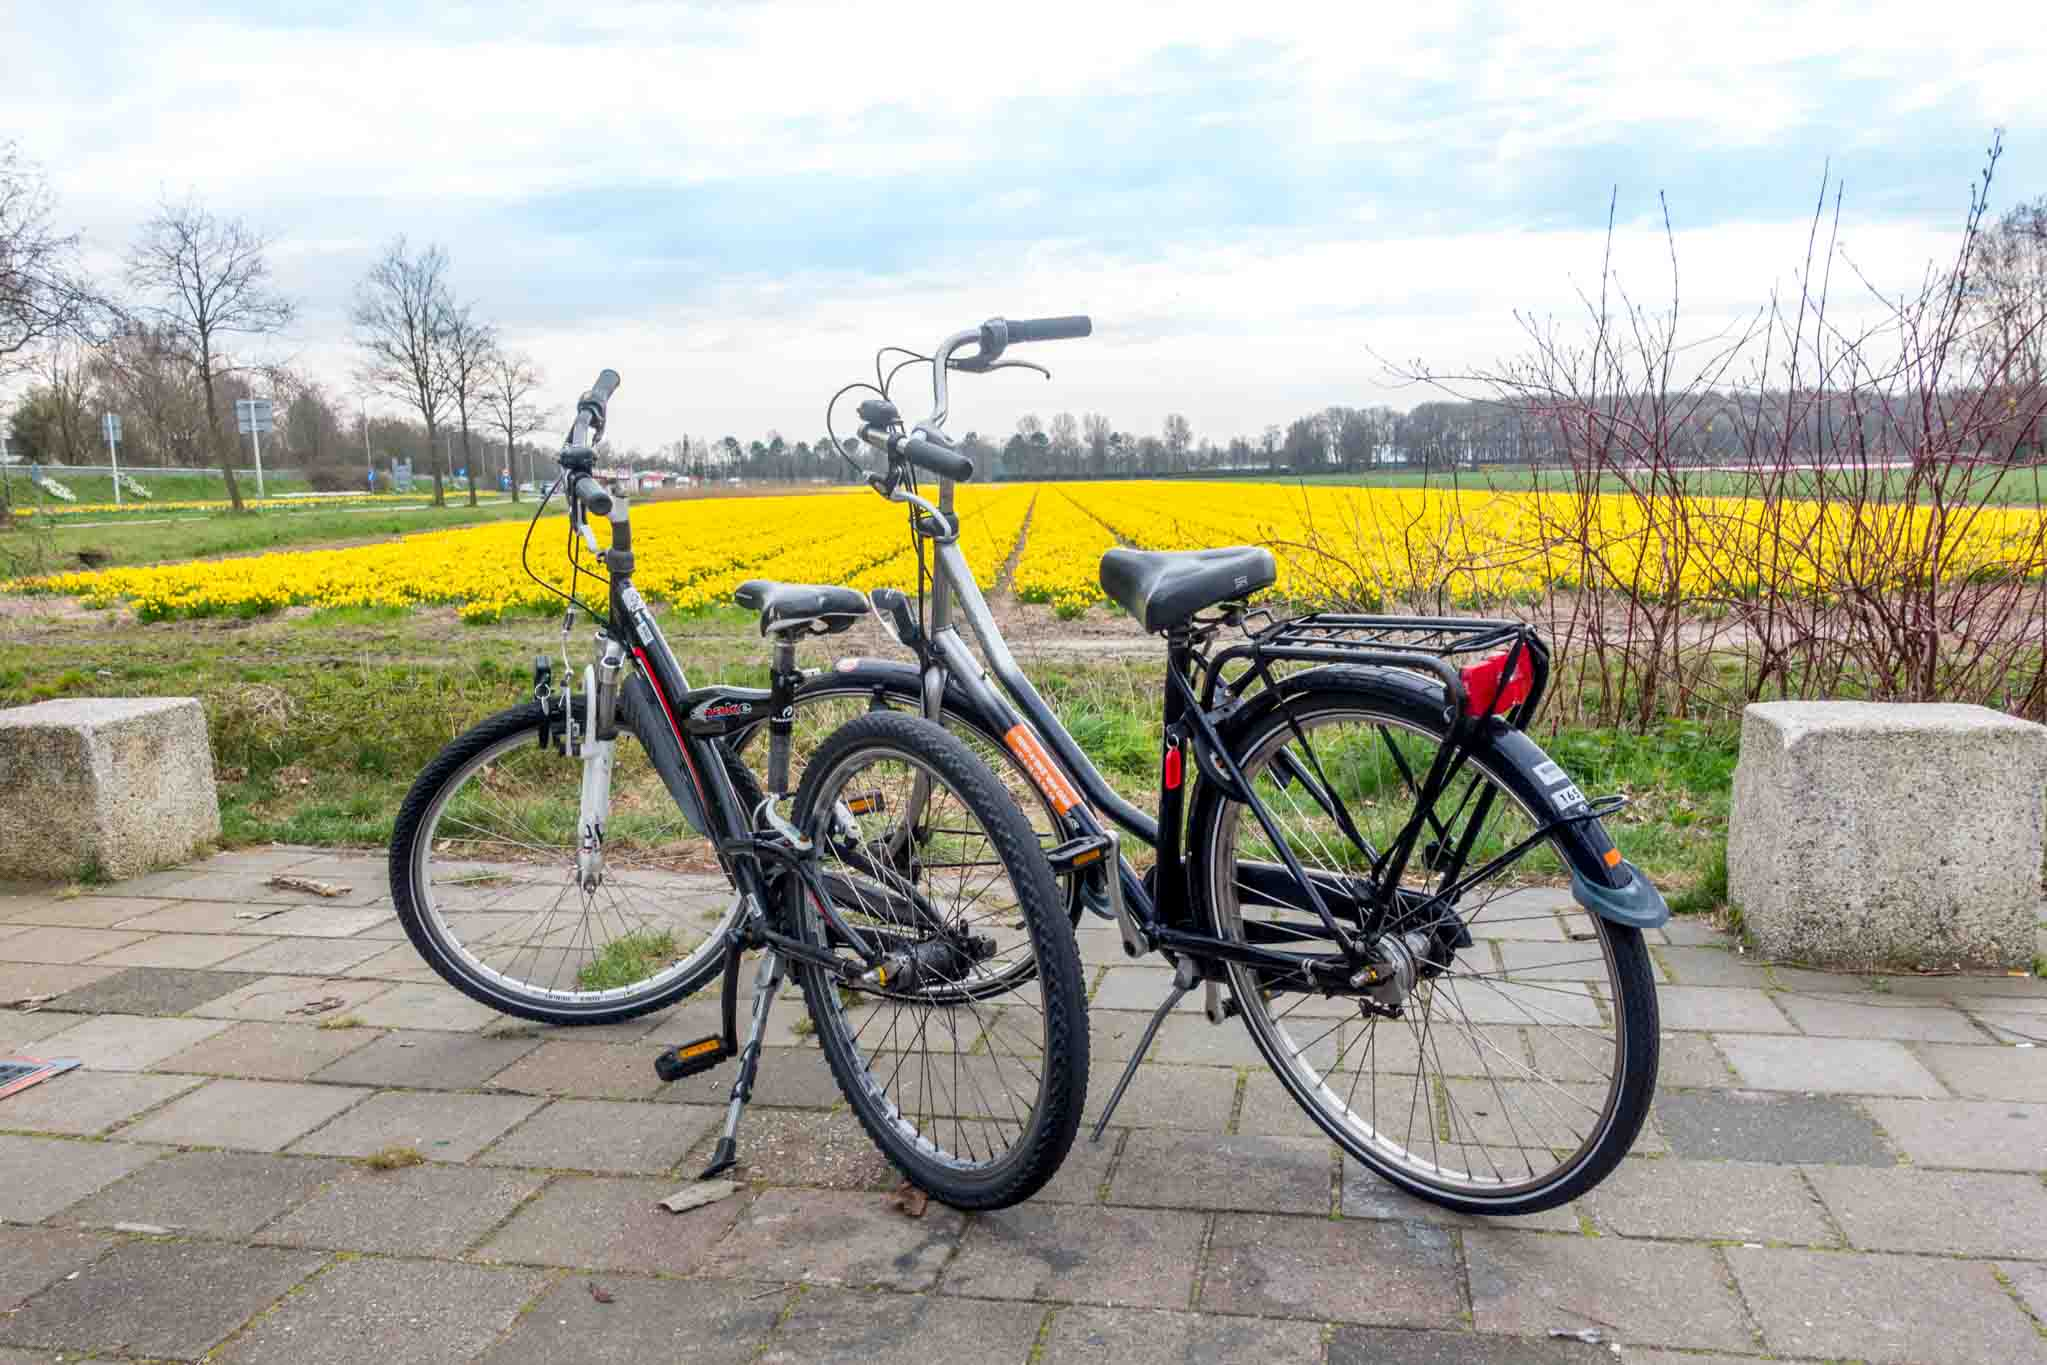 Bicycles beside a flower field